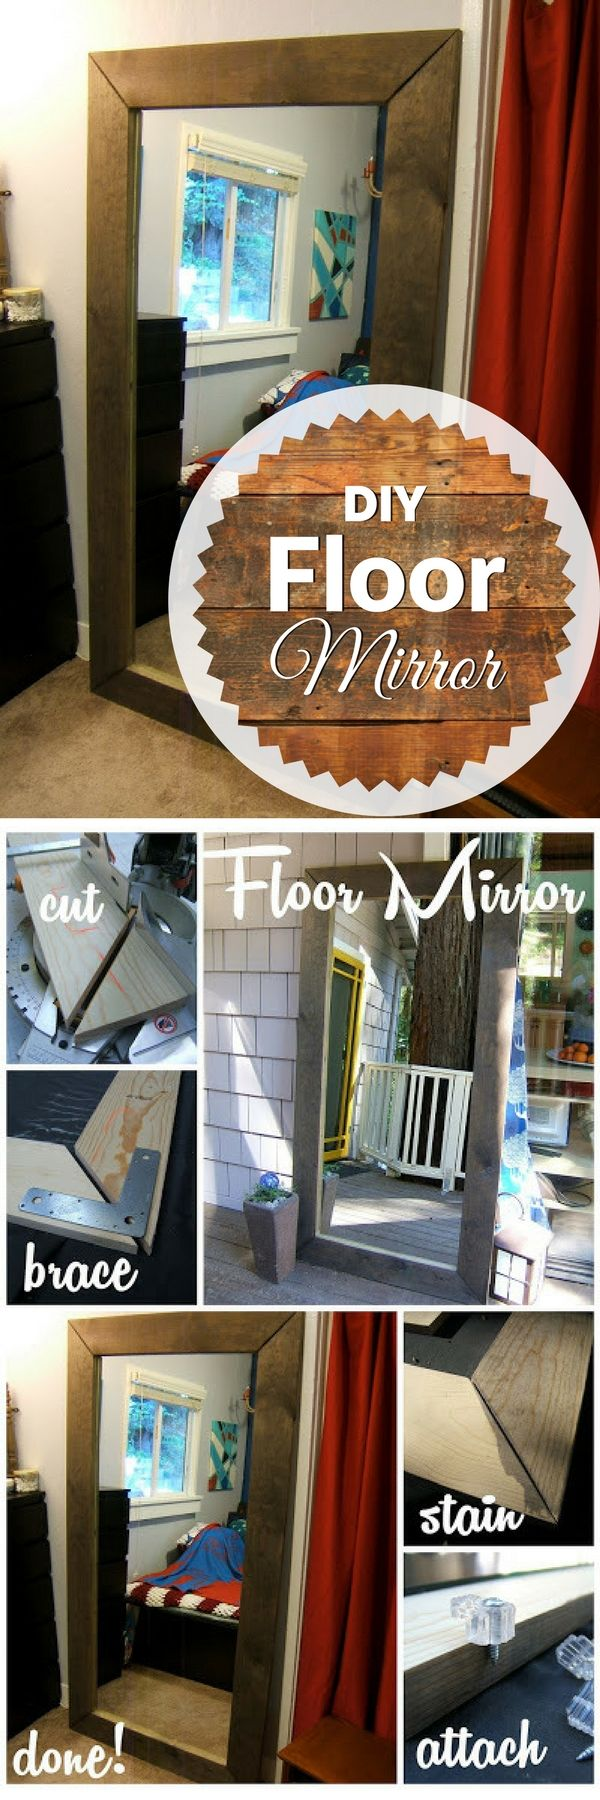 Check out how to make an easy #DIY rustic floor mirror #RusticDecor #BedroomDecor #HomeDecorIdeas @istandarddesign